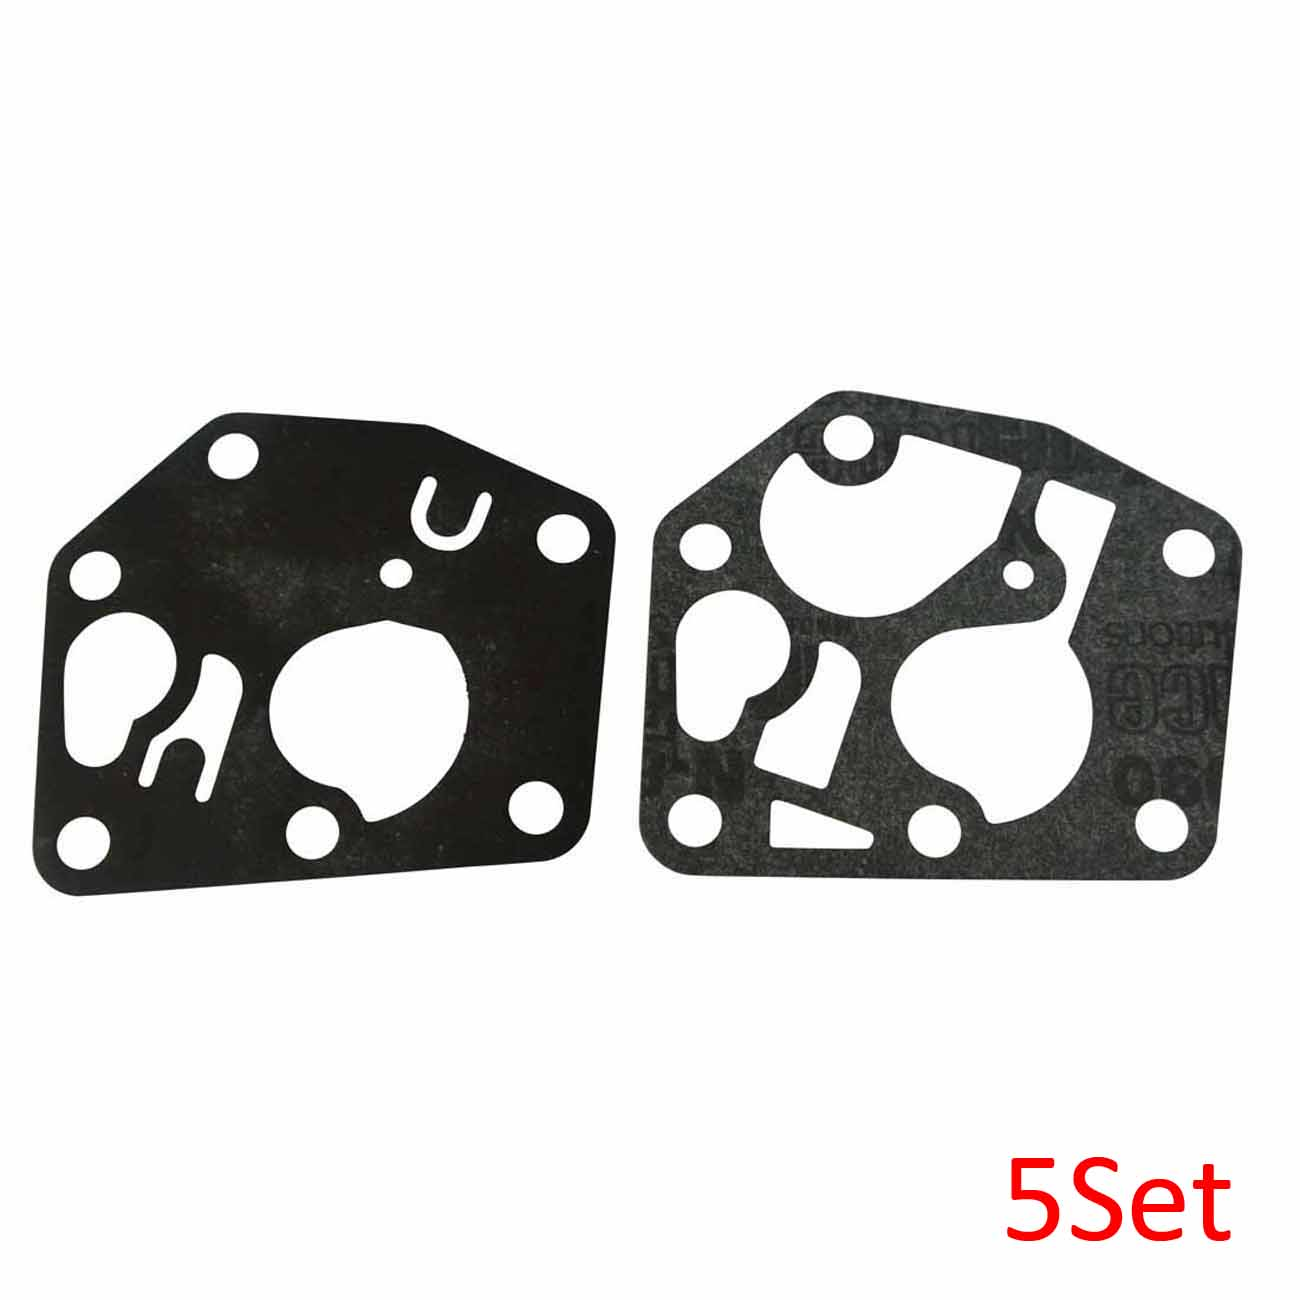 5Set Carb Gasket Kit For <font><b>Briggs</b></font> and Stratton Carburettor Diaphragm <font><b>795083</b></font> image